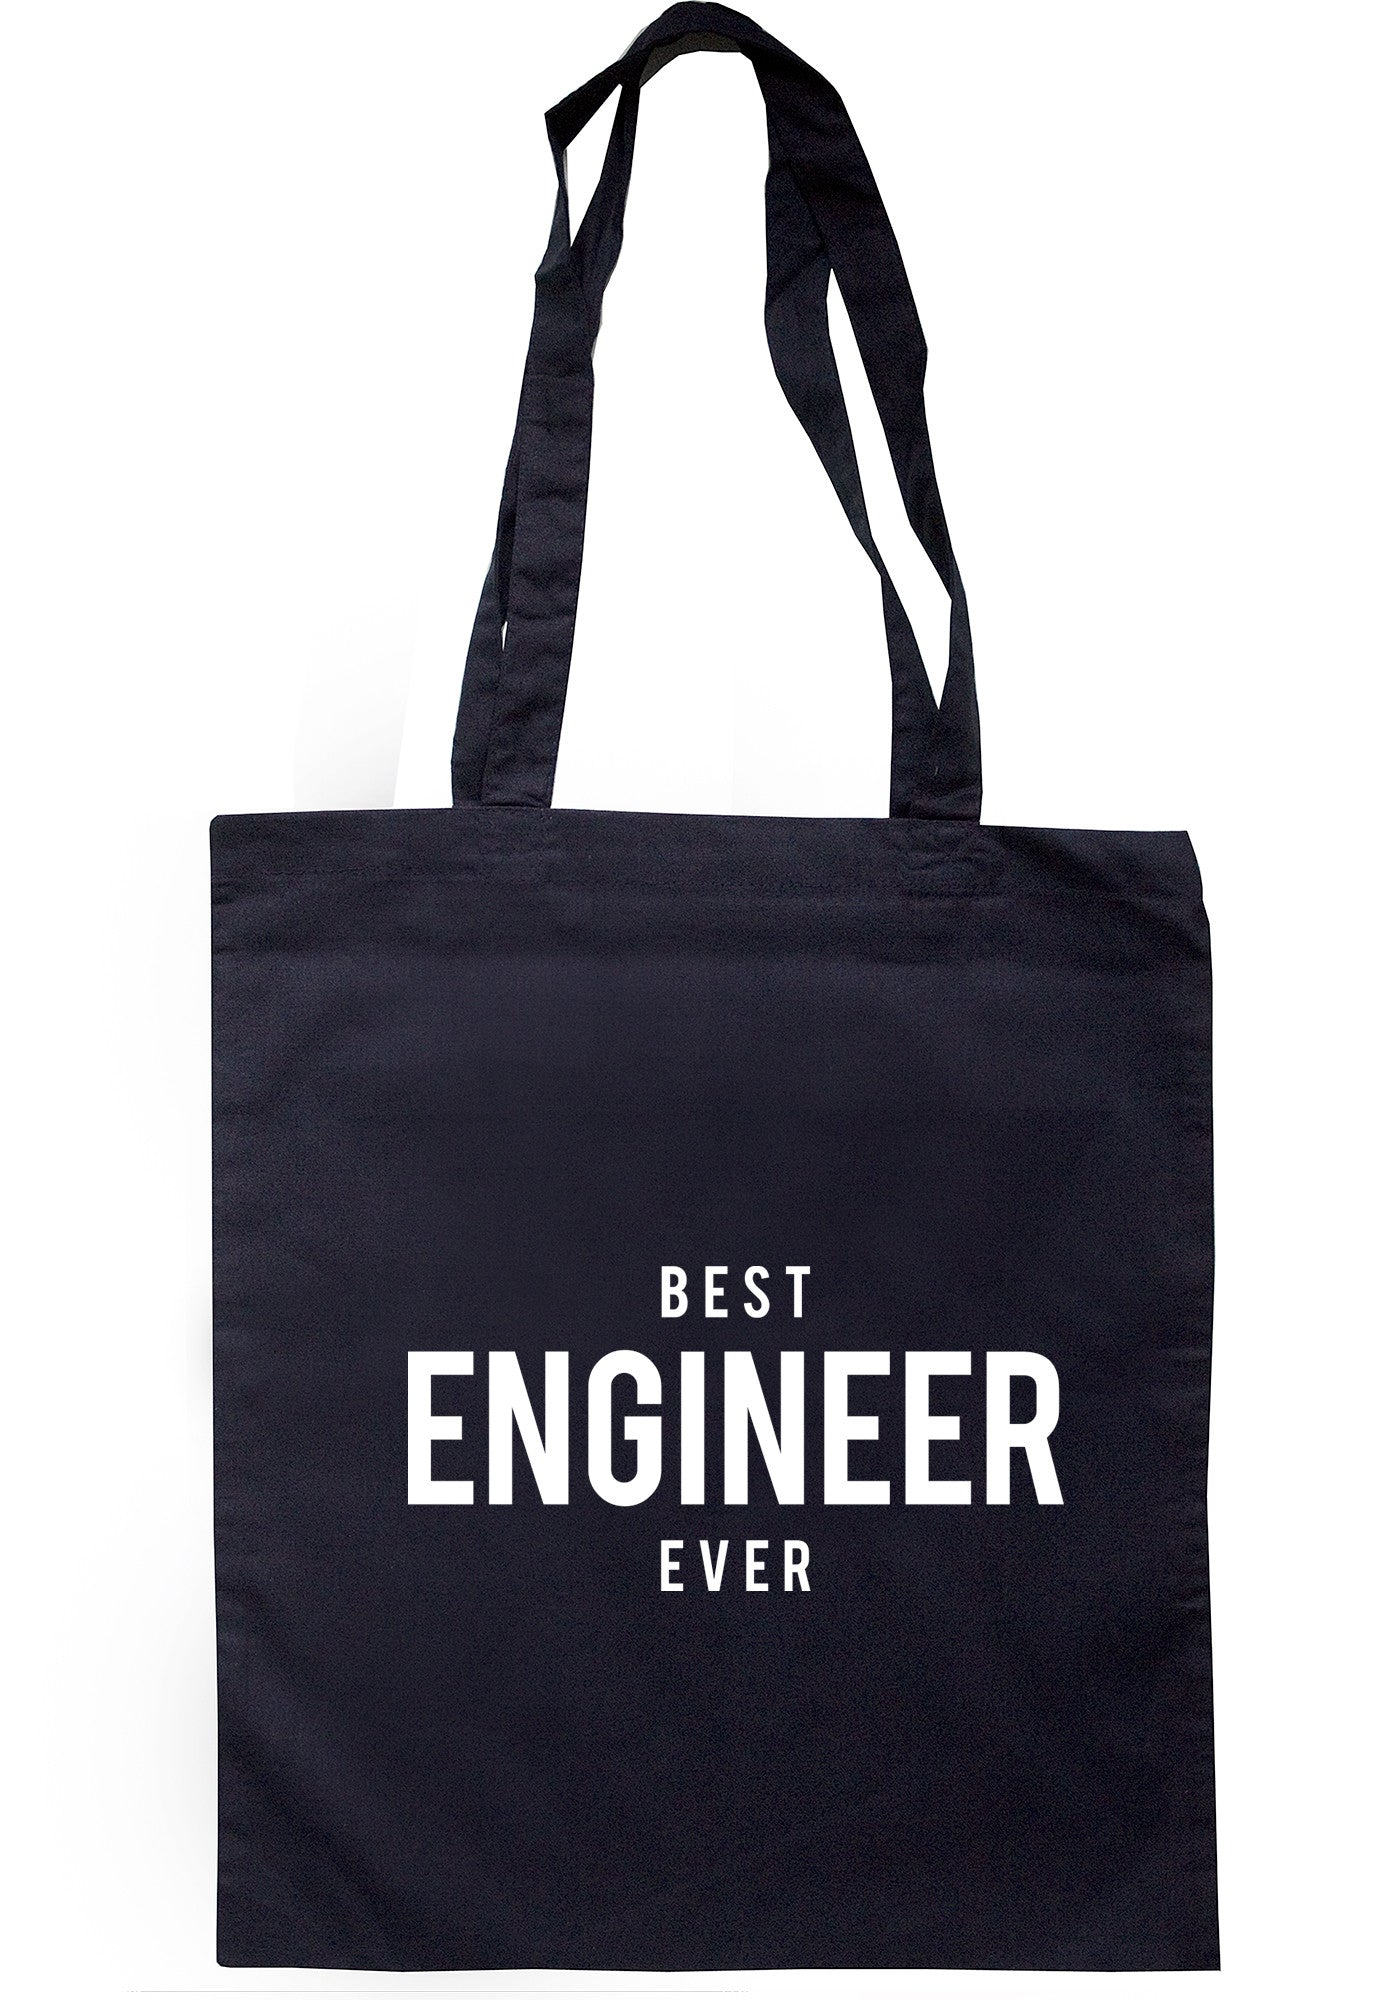 Best Engineer Ever Tote Bag TB1299